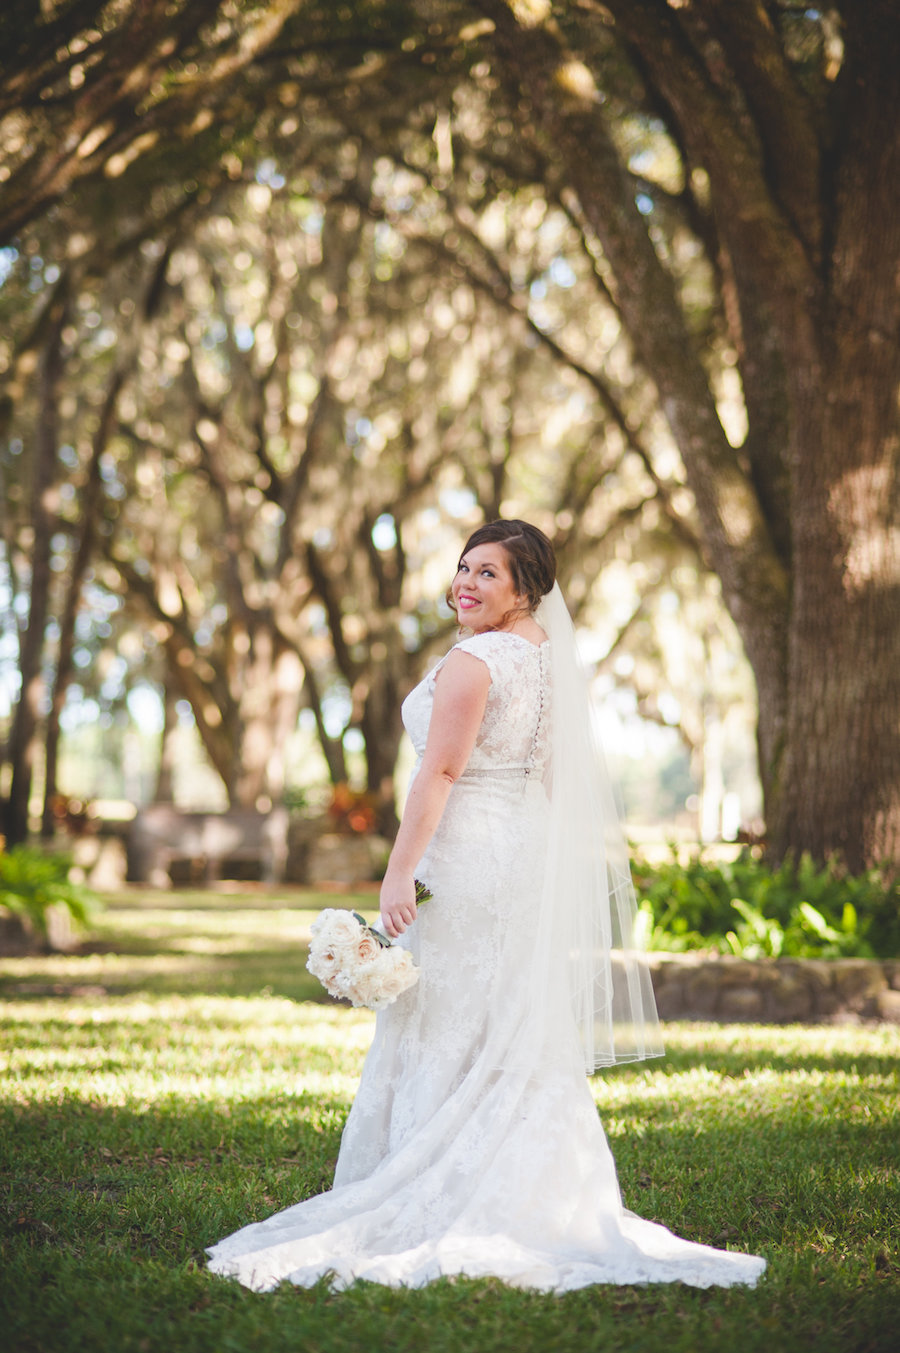 Outdoor Dade City Bride Wedding Portrait in Ivory, Lace Gown with Veil | Dade City Wedding Venue The Lange Farm